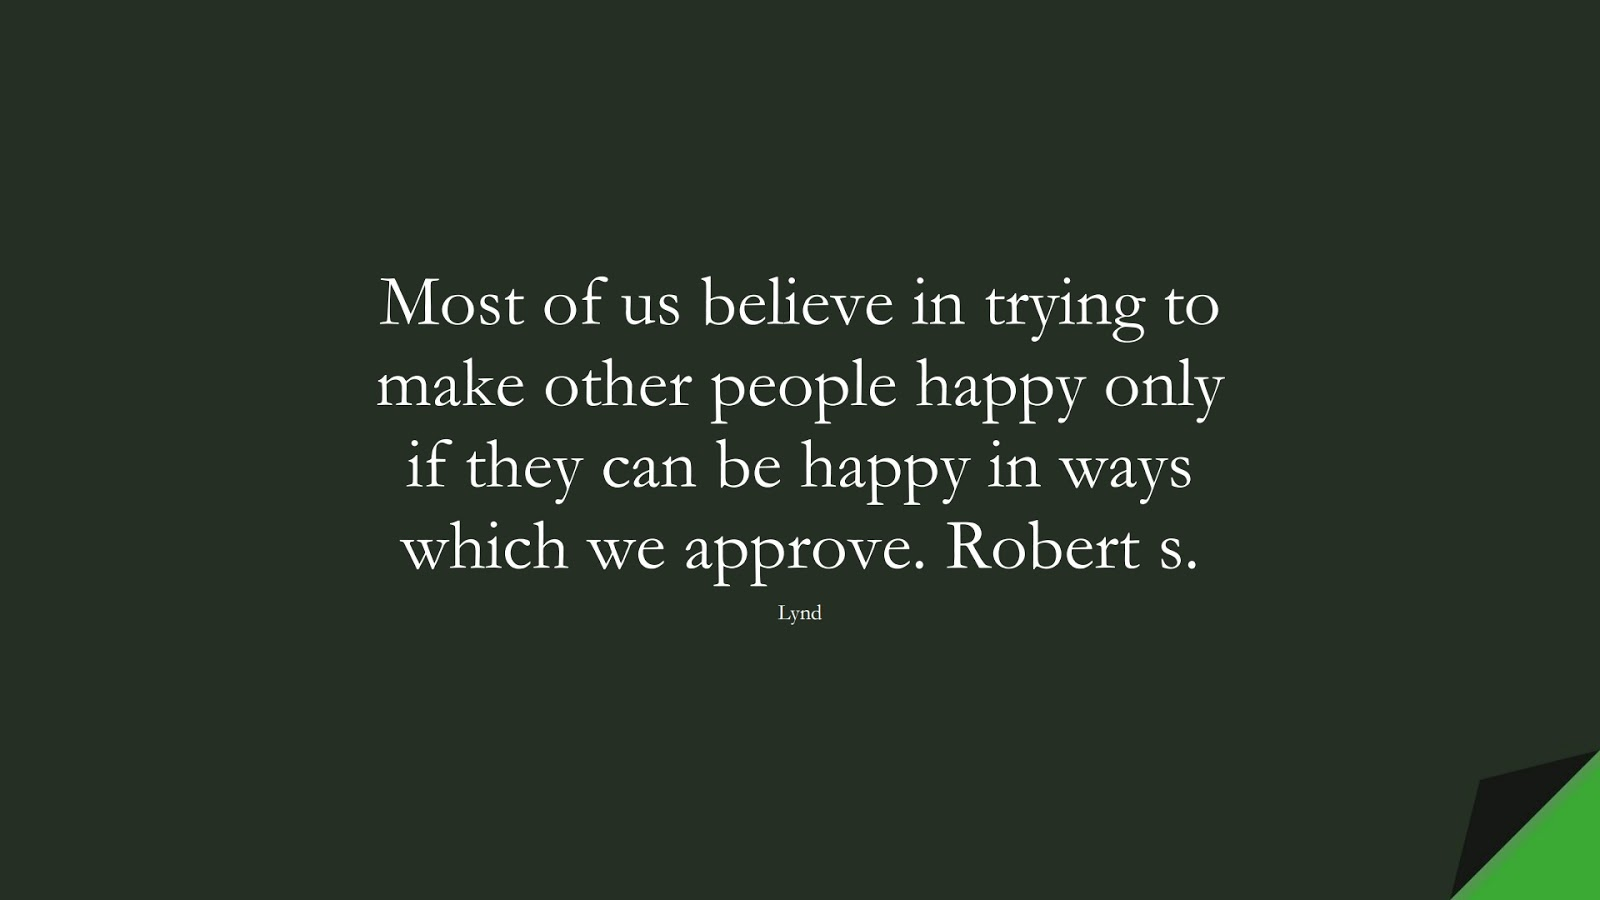 Most of us believe in trying to make other people happy only if they can be happy in ways which we approve. Robert s. (Lynd);  #HappinessQuotes